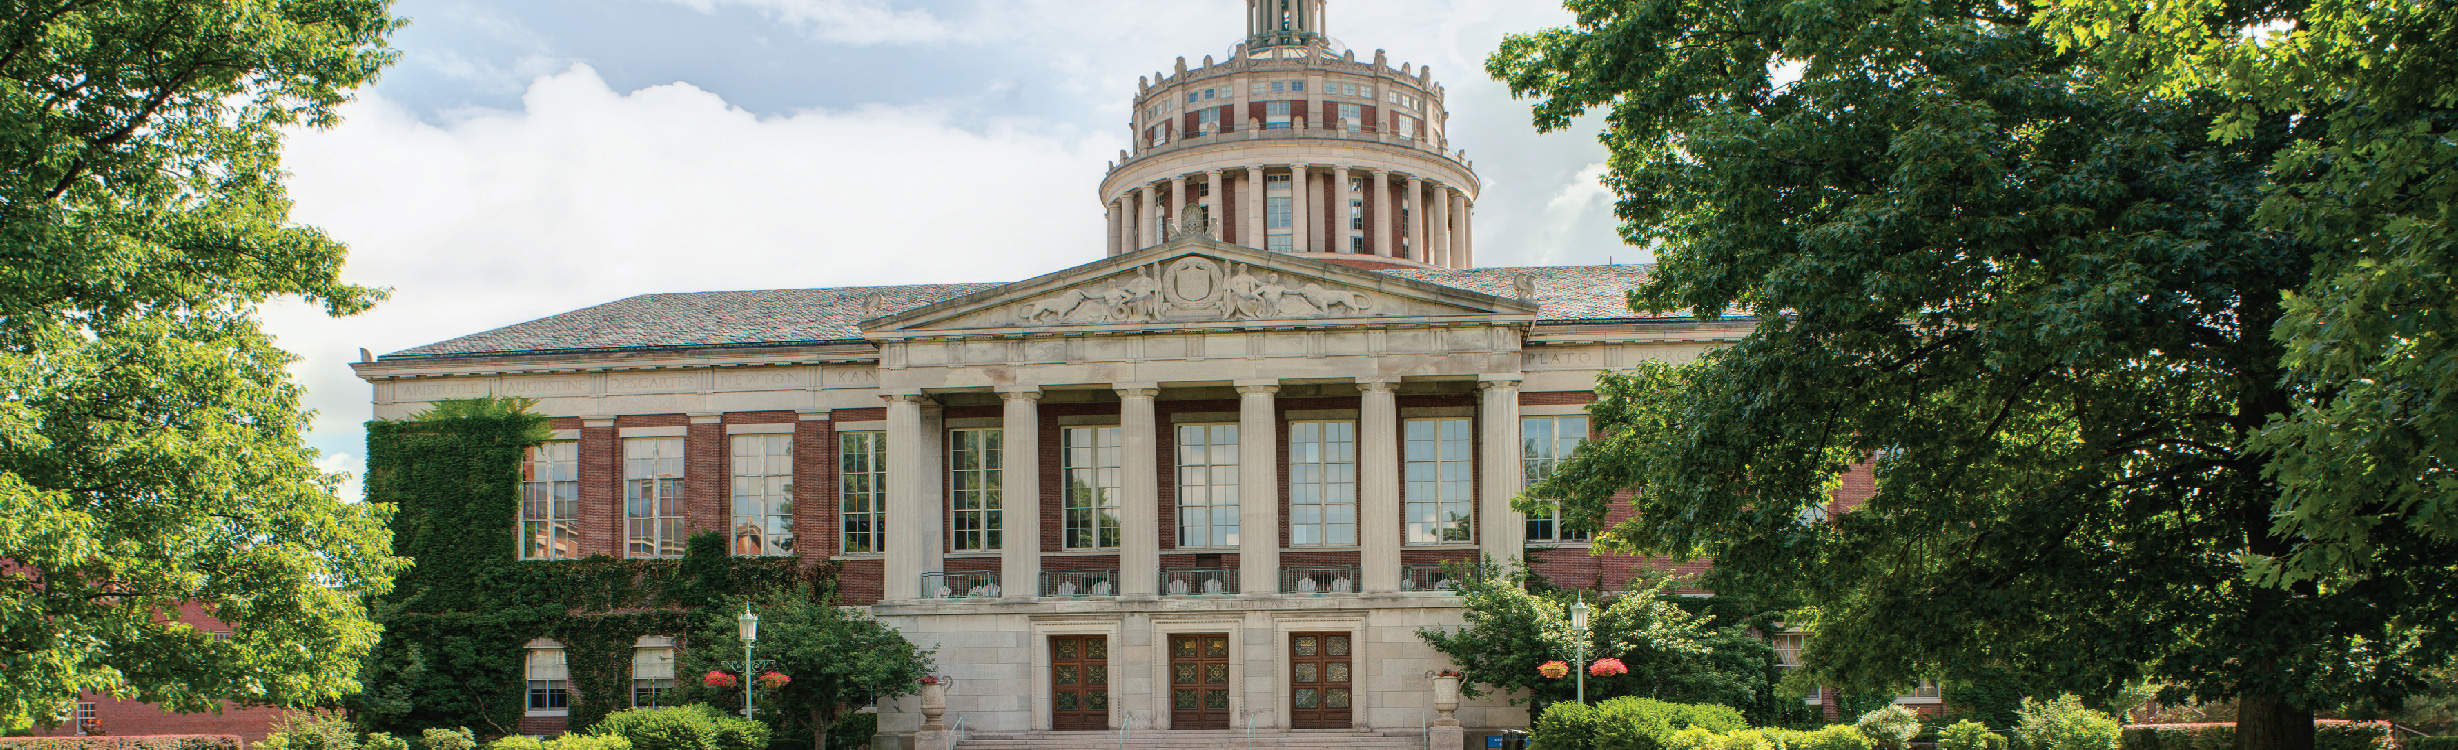 University of Rochester Requirements for Admission